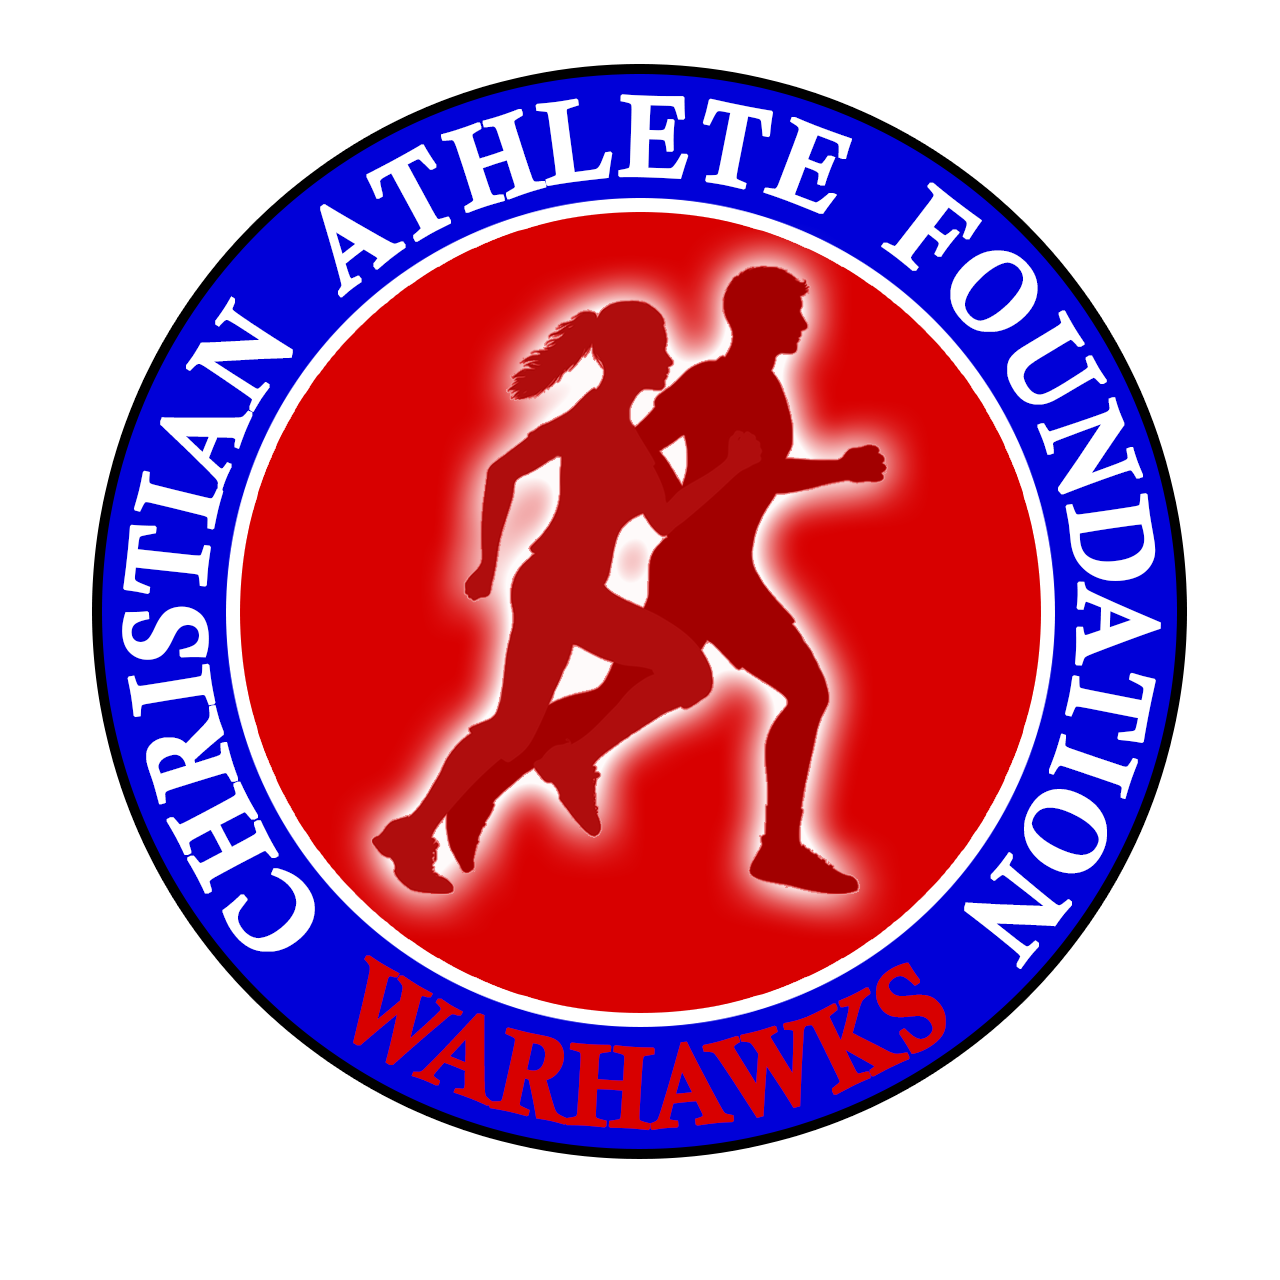 Warhawk Christian Athlete Foundation